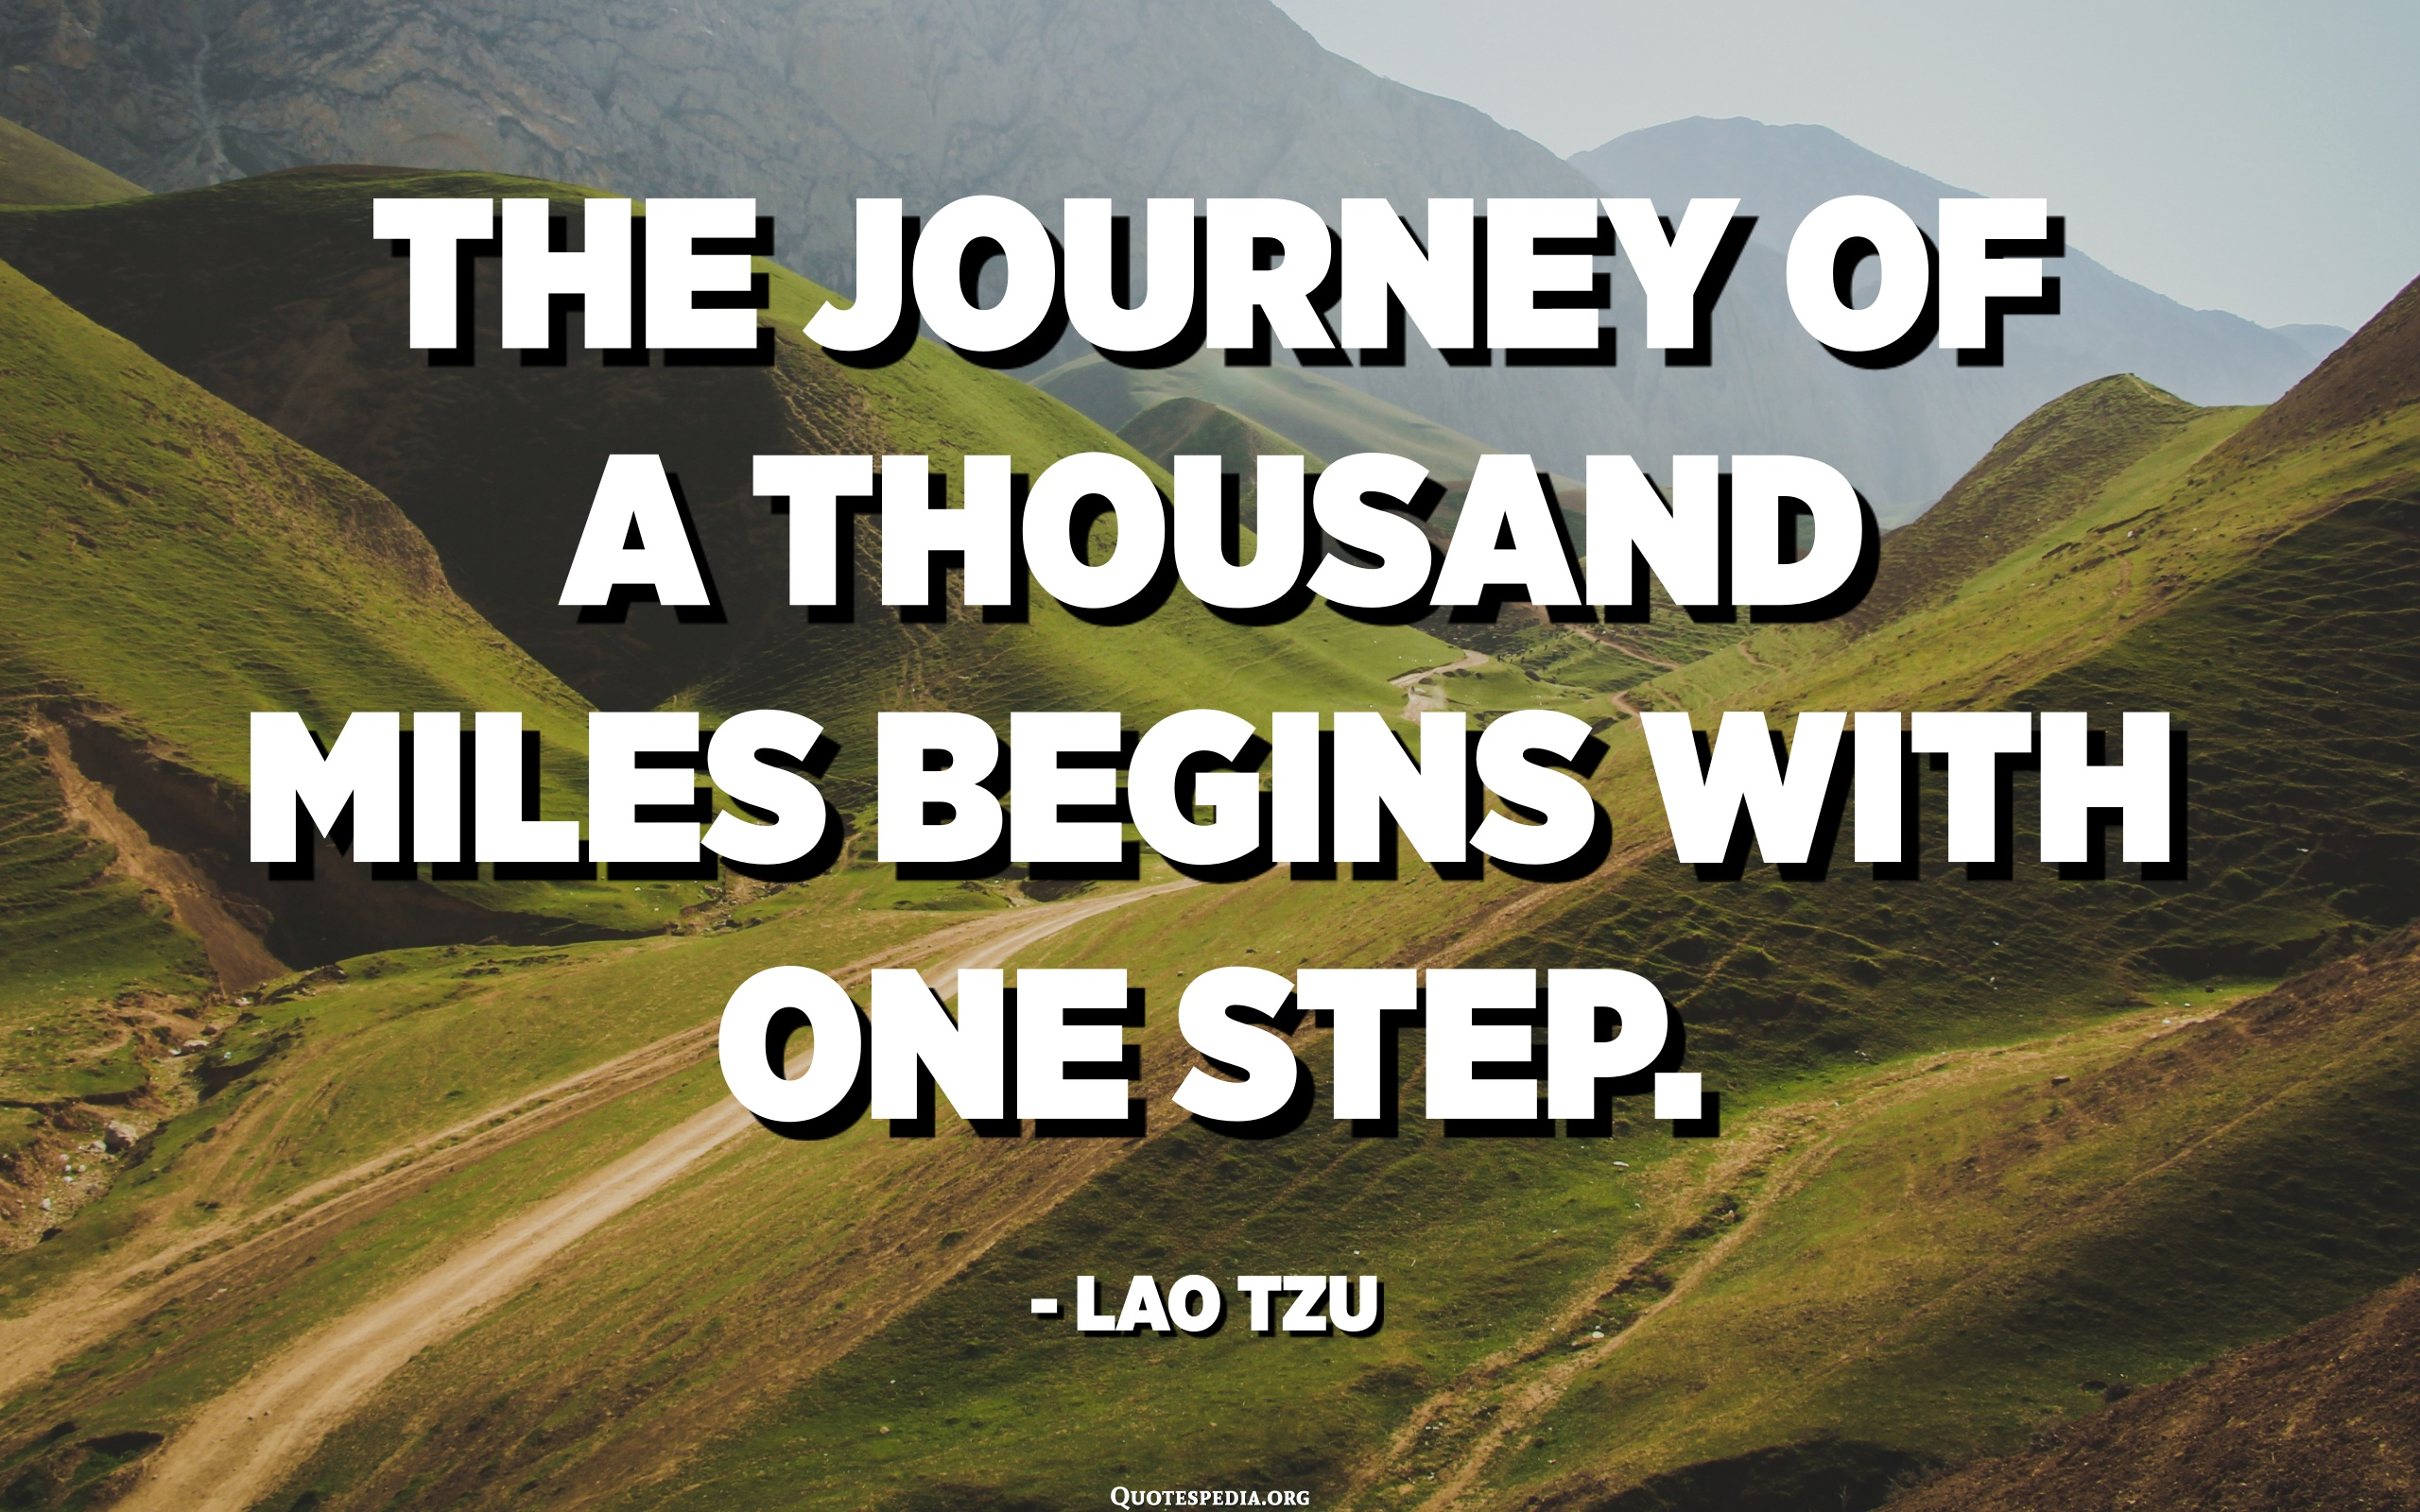 The journey of a thousand miles begins with one step. - Lao Tzu -  Quotespedia.org